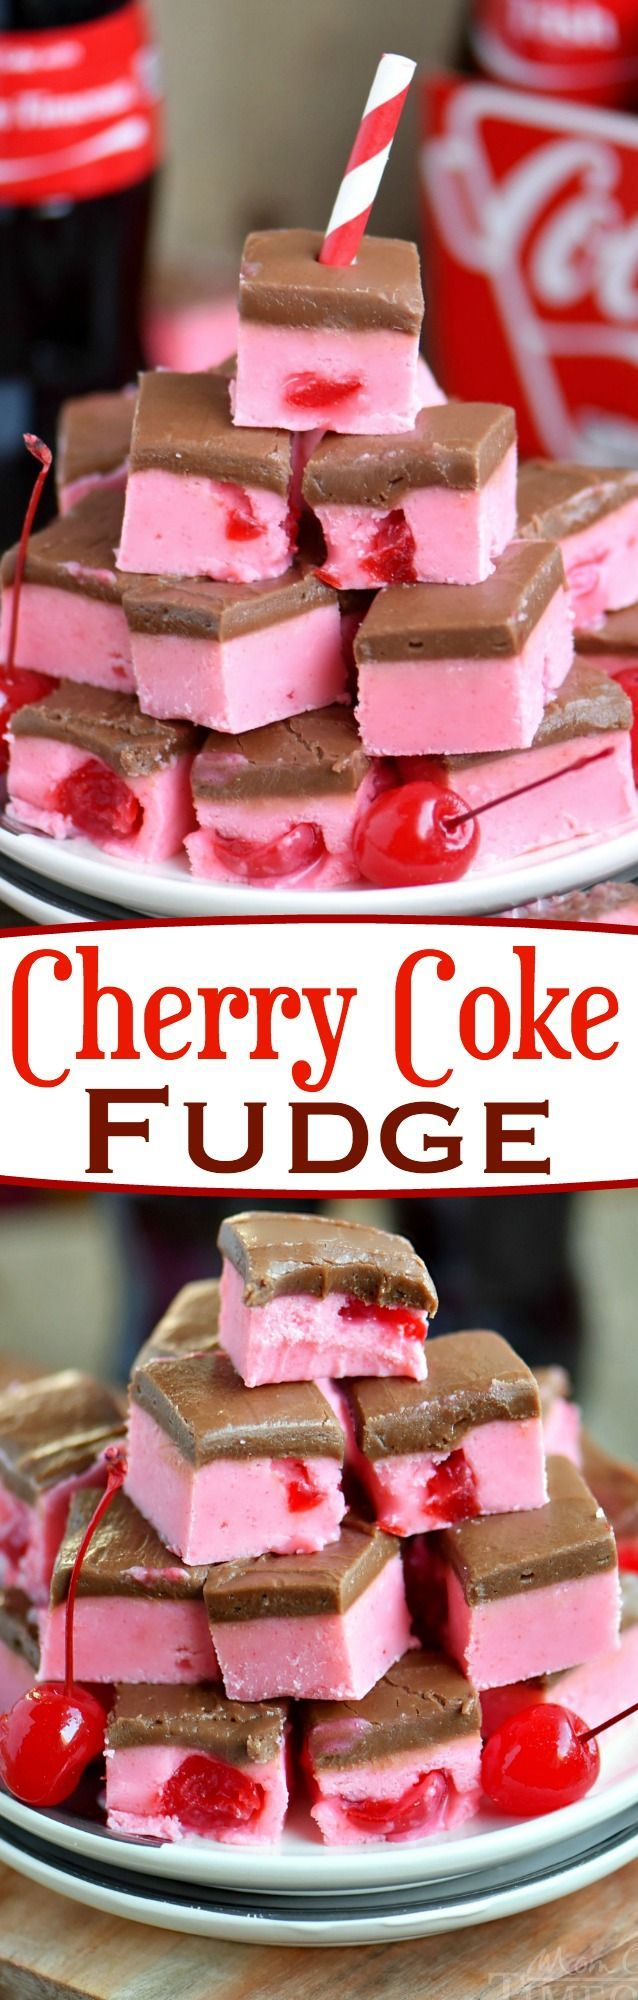 Because we can... Cherry Coke Fudge! A decadent cherry fudge topped with a Coca-Cola chocolate frosting! This irresistible fudge is sure to be a hit!